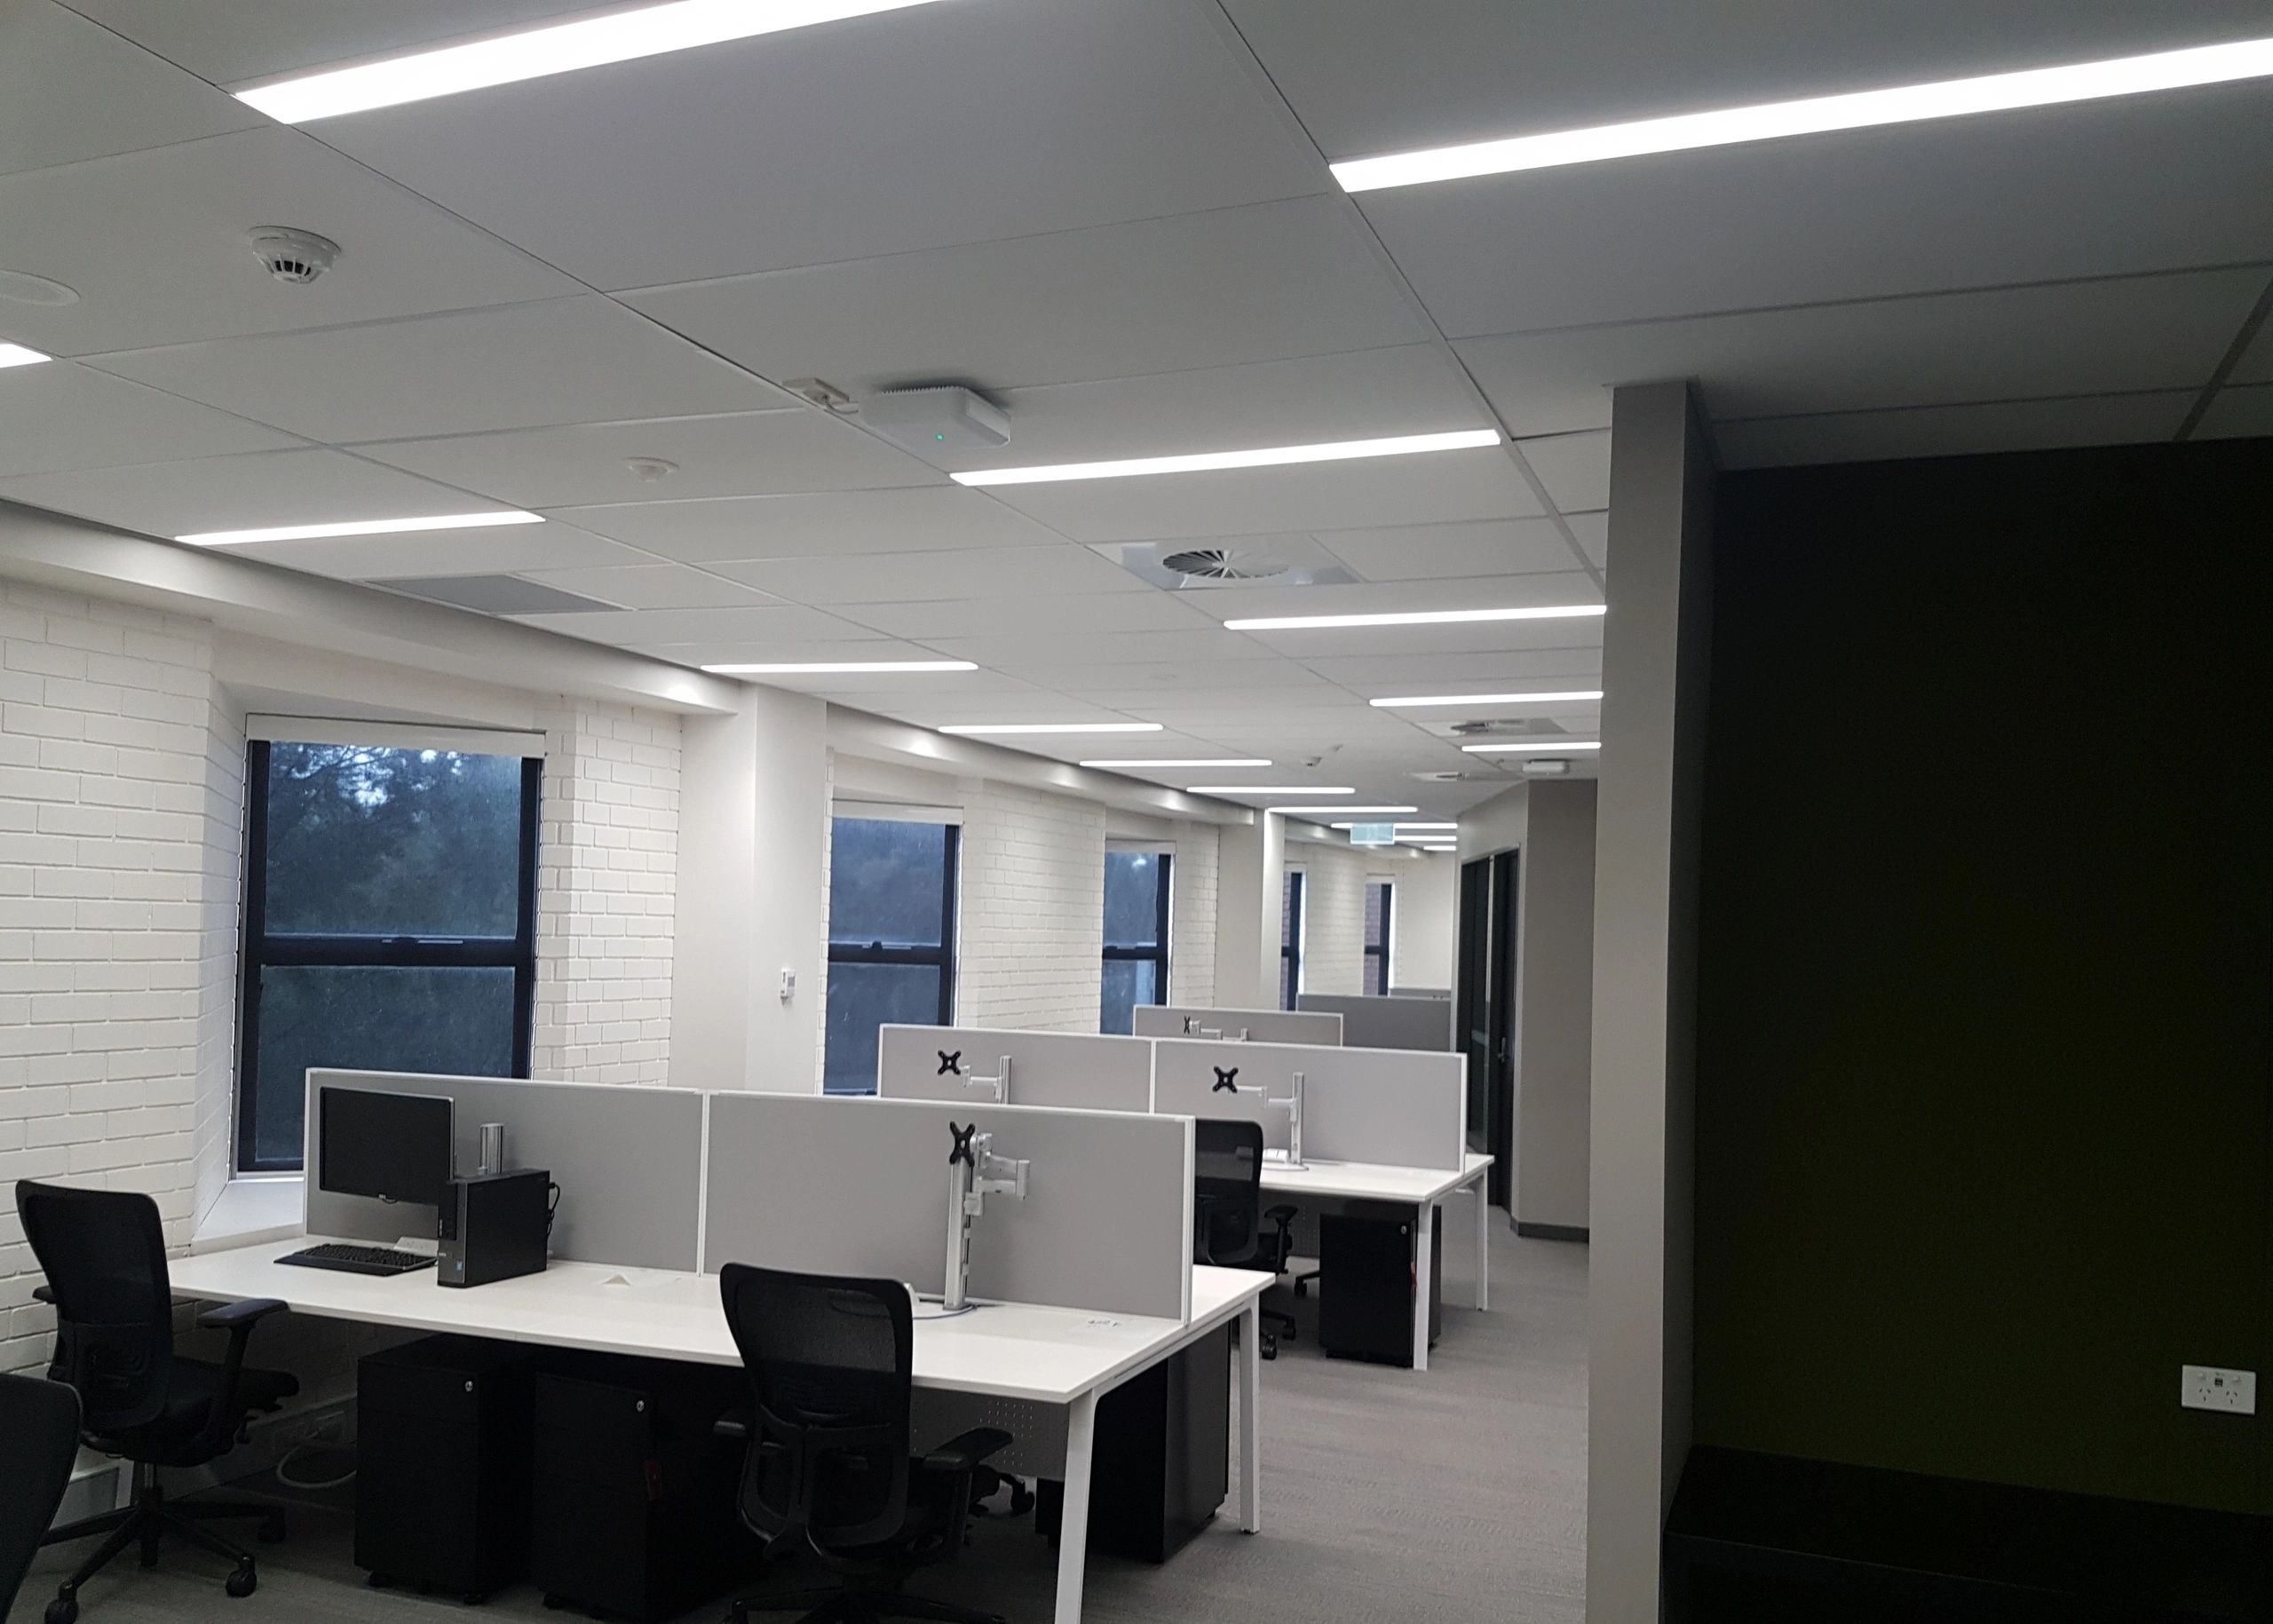 LED lighting upgrade at La Trobe University